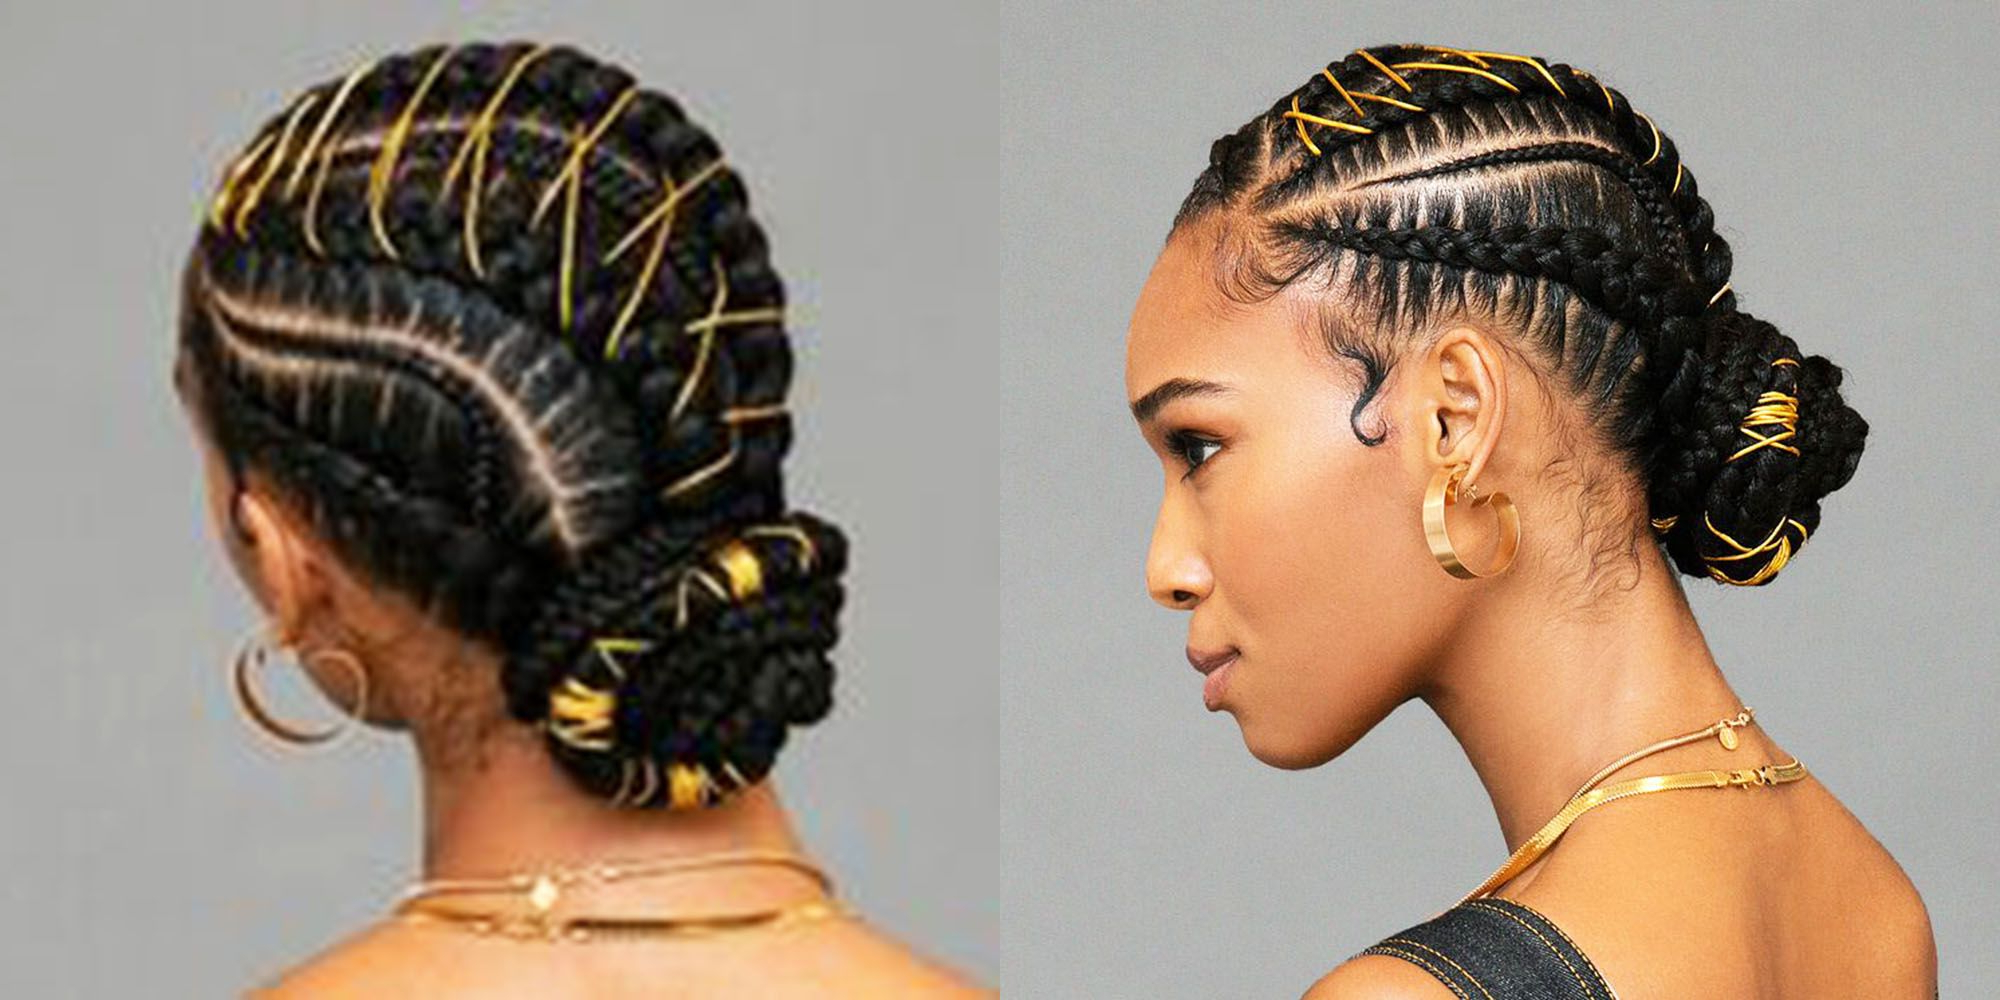 Popular Metallic Side Cornrows Braided Hairstyles For Um, This Braided Bun With Gold Stitching Is Definitely The Next Style You Need To Try (View 16 of 20)